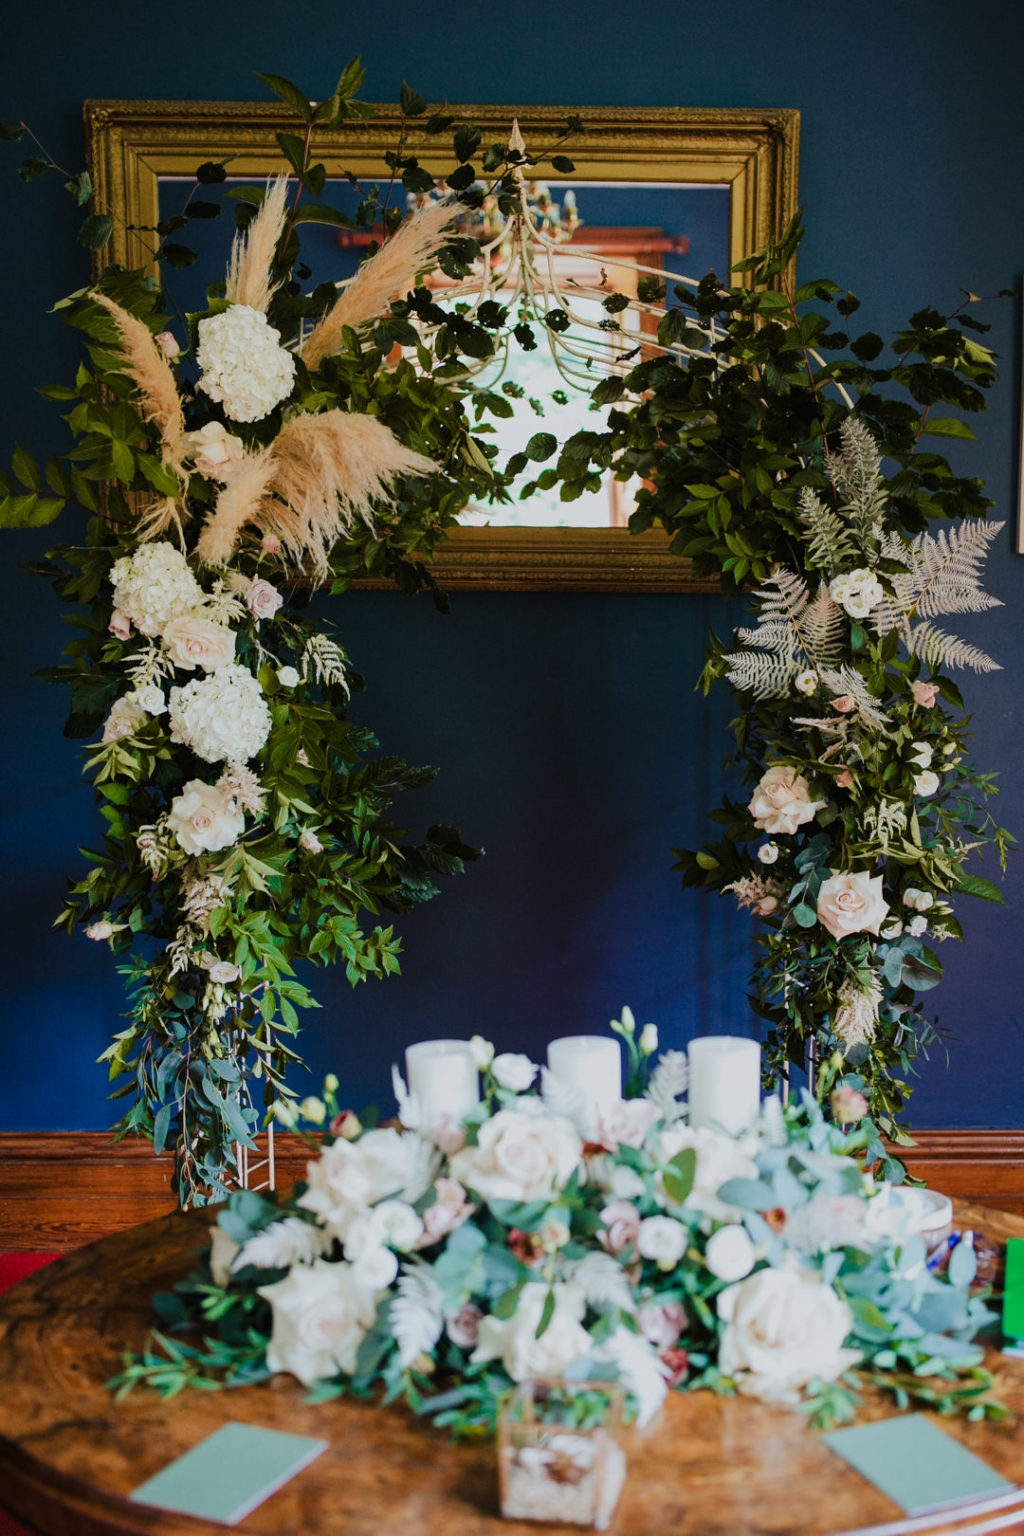 The wedding arch was of greenery, pampas grass and white and blush blooms